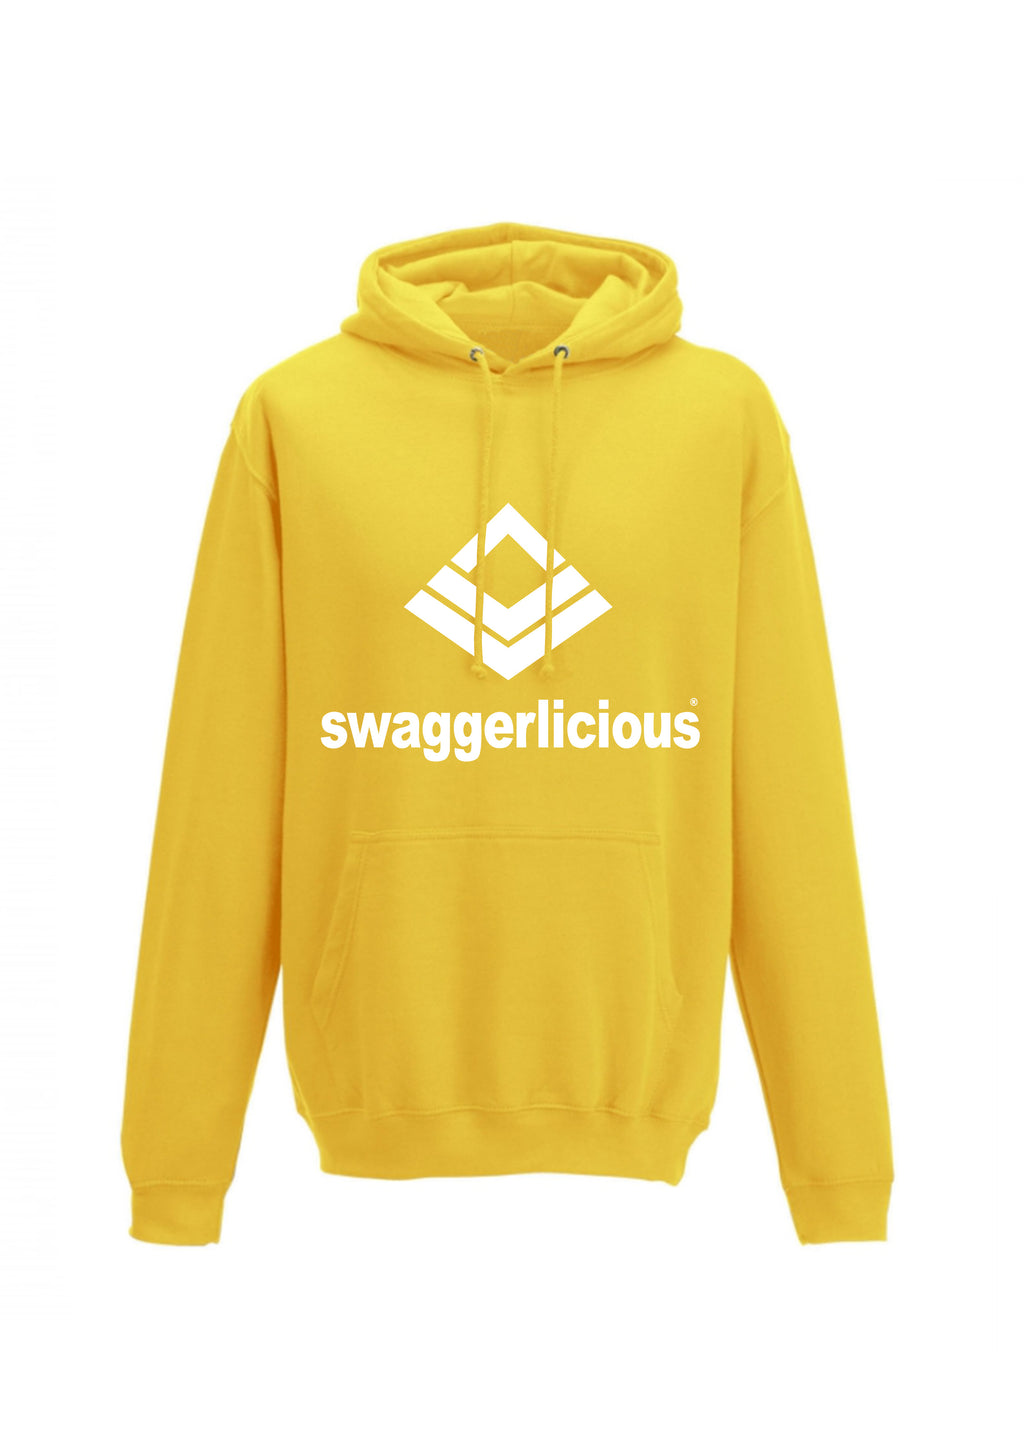 SWAGGERLICIOUS CLASSIC  YELLOW SPORTS HOODIE WITH WHITE LOGO - swaggerlicious-clothing.com